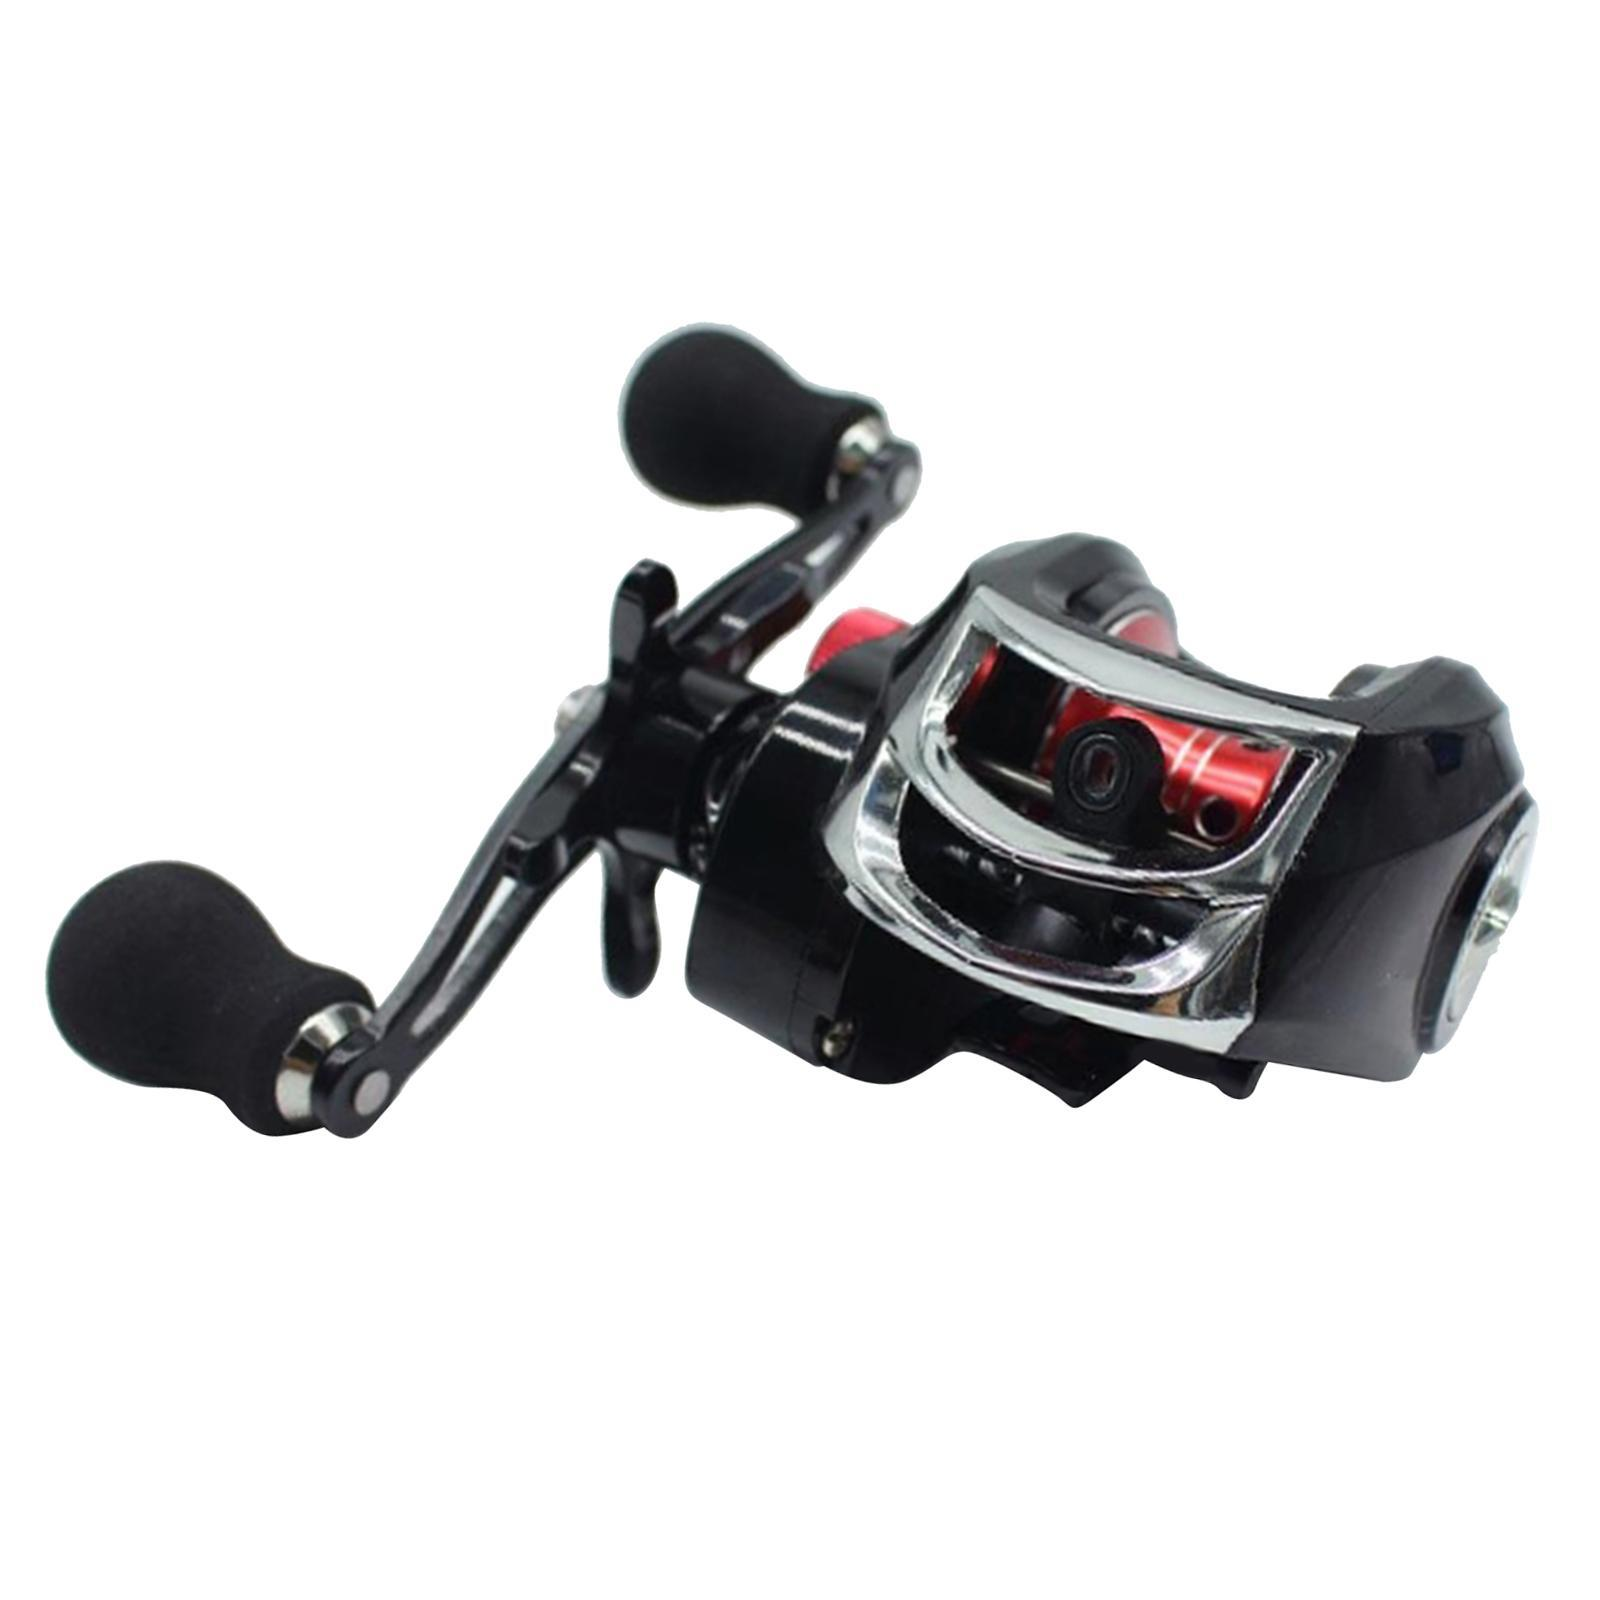 Full-Metal-Baitcaster-Low-Profile-Baitcasting-Fishing-Reel-Long-Casting-Reel thumbnail 7